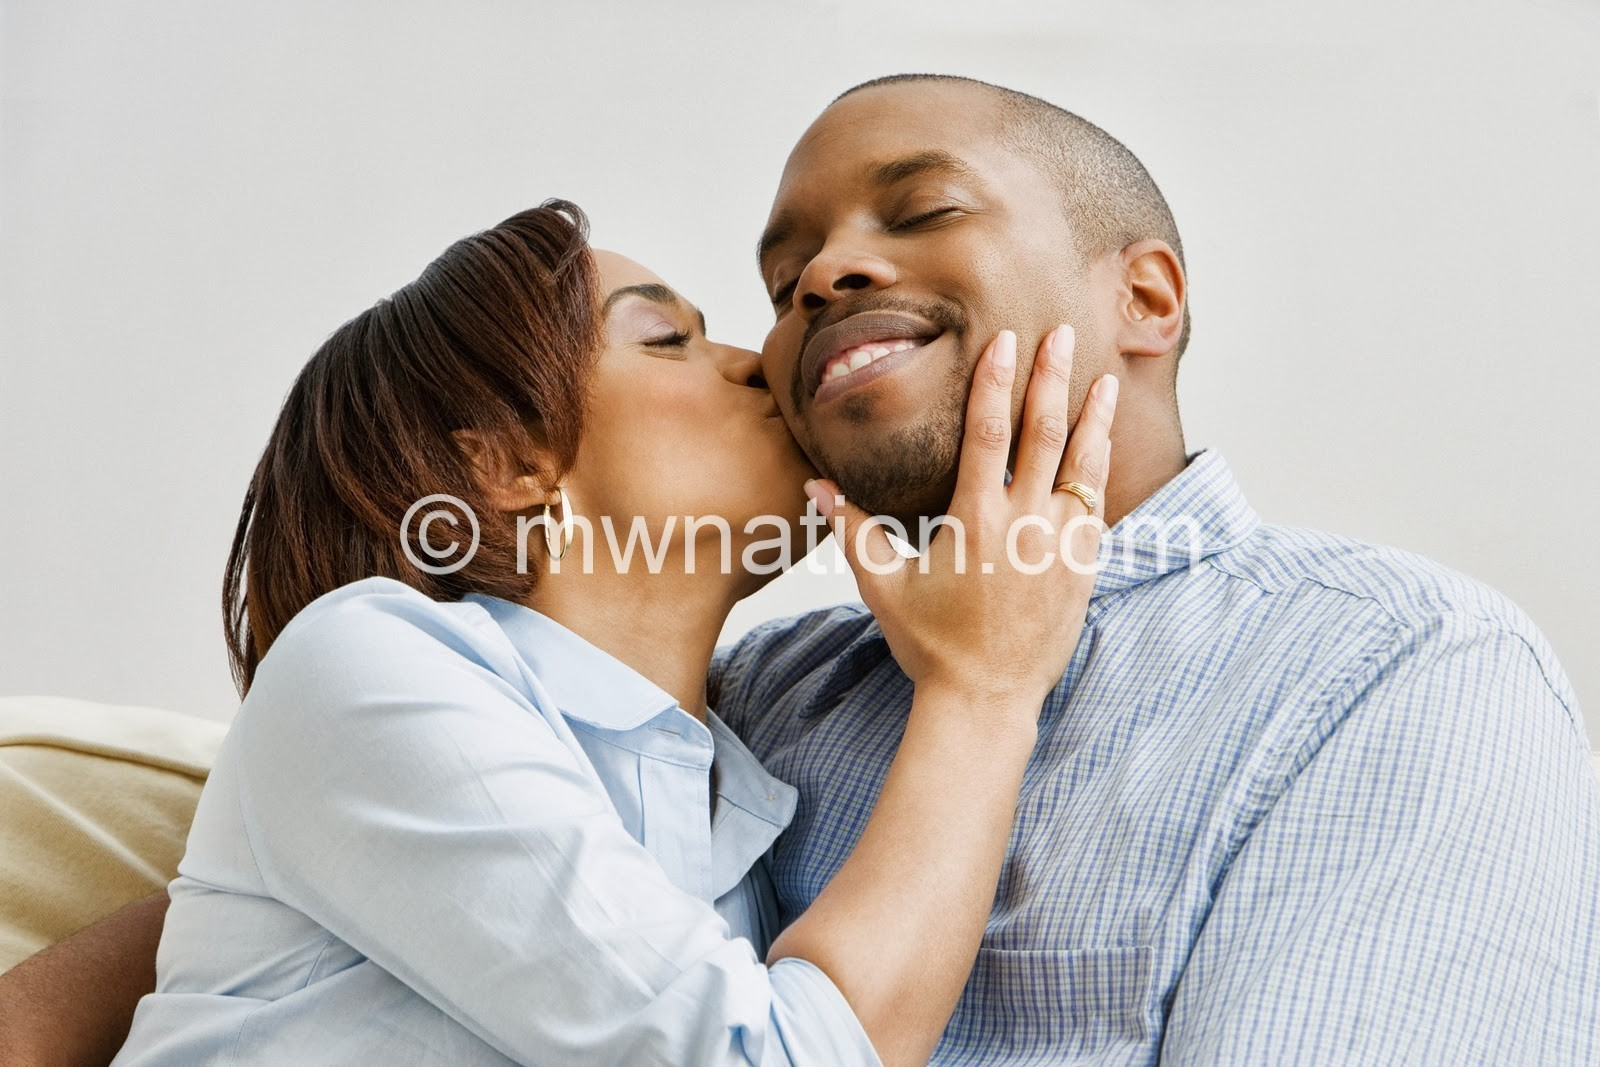 African American Couple Kissing | The Nation Online